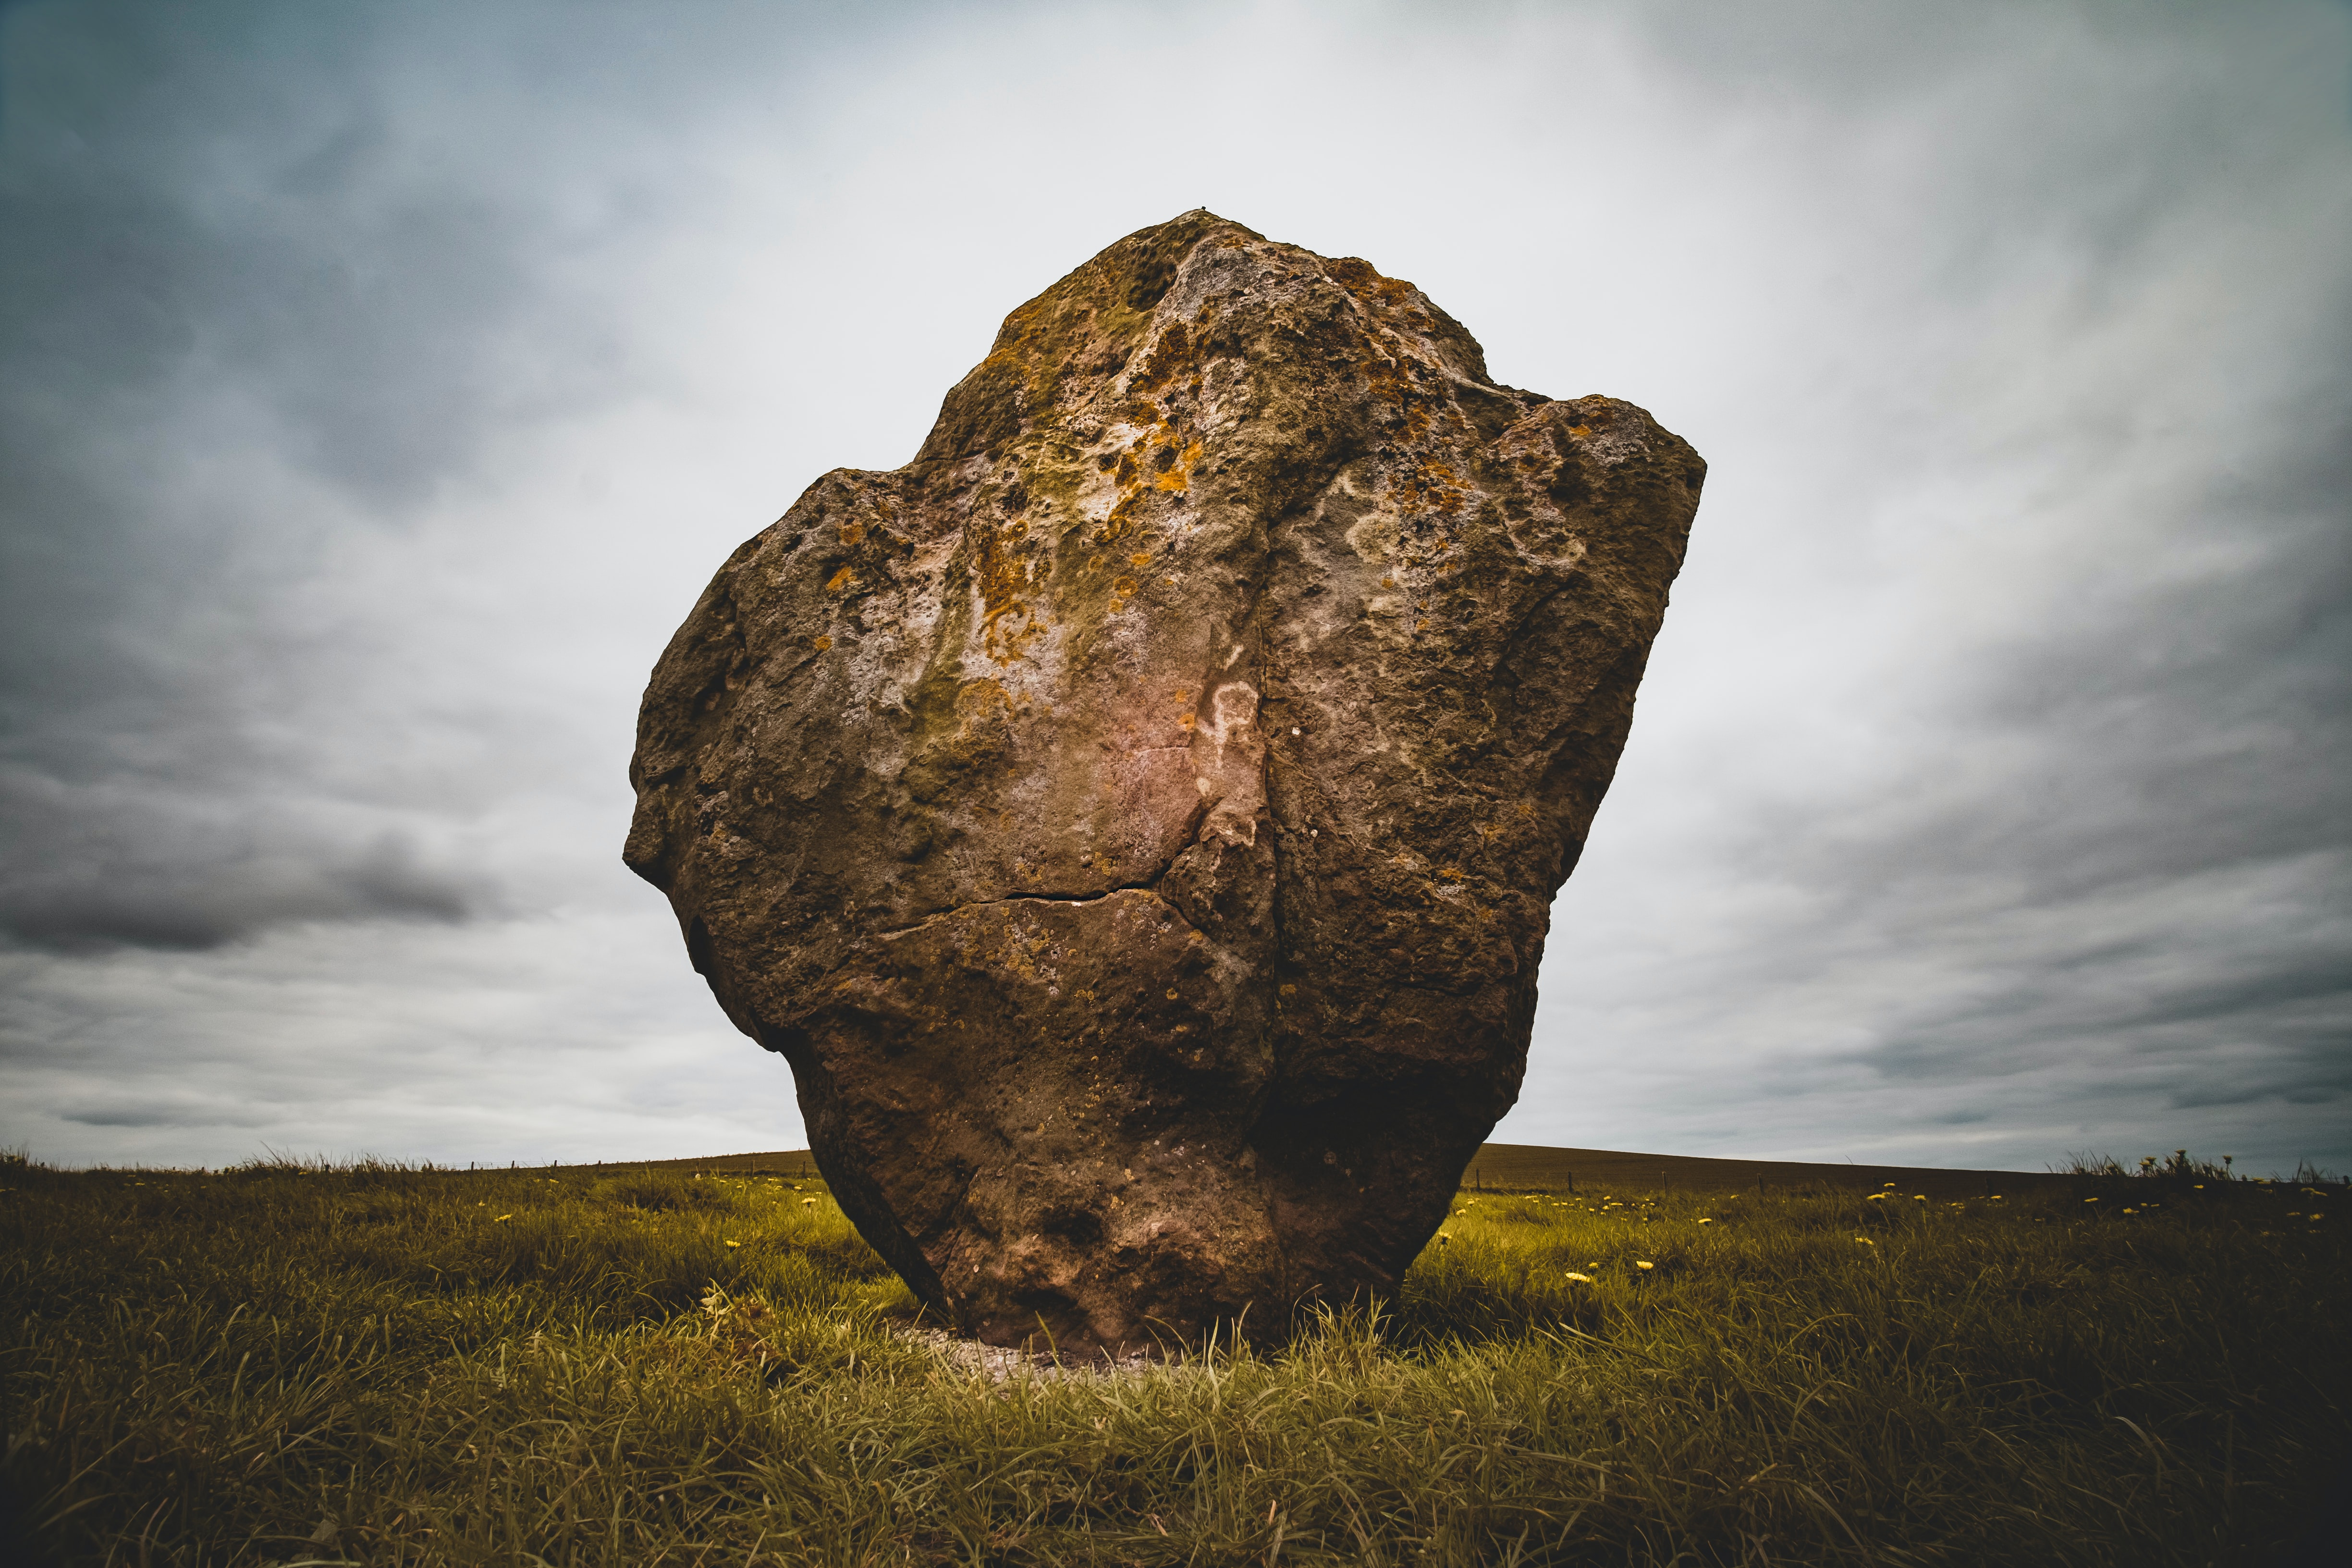 photo of a stone monolith in a field